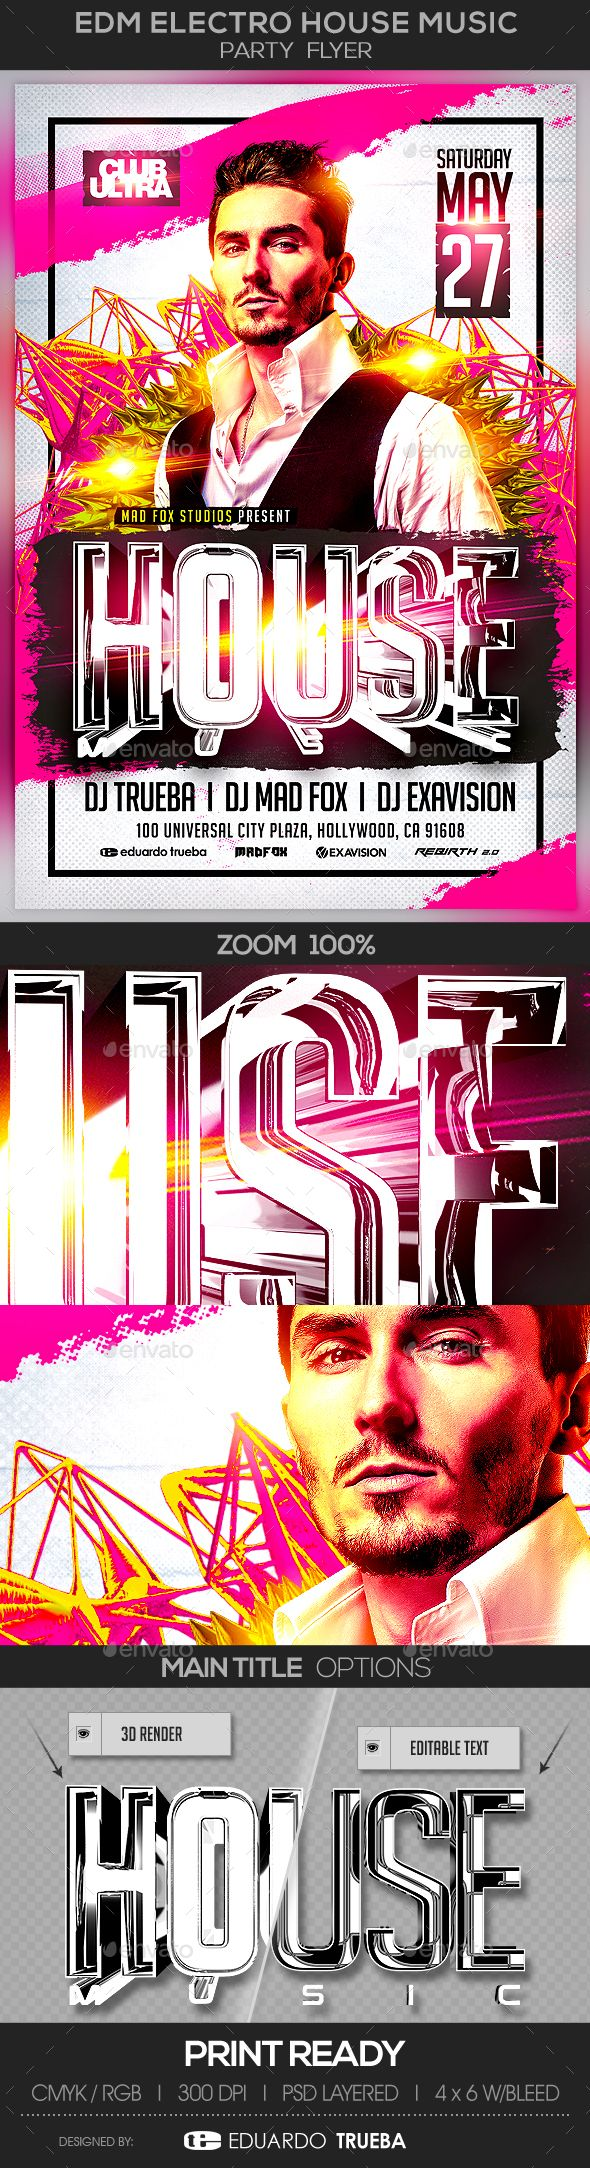 EDM Electro House Music Party Flyer Template PSD